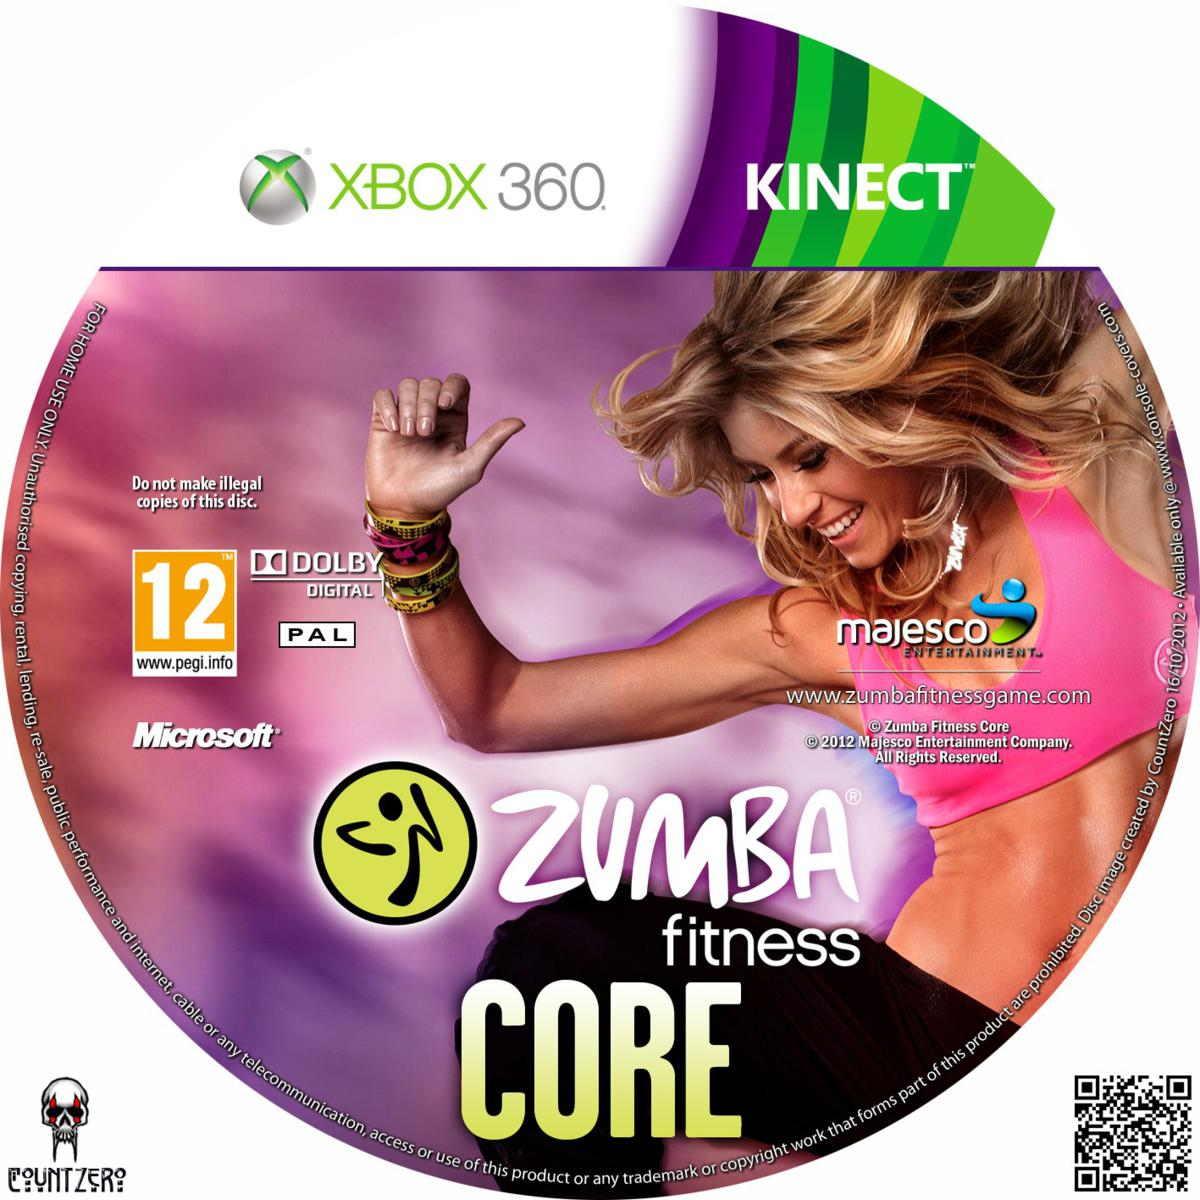 label zumba fitness core xbox 360 gamecover capas customizadas para dvd e blu ray. Black Bedroom Furniture Sets. Home Design Ideas